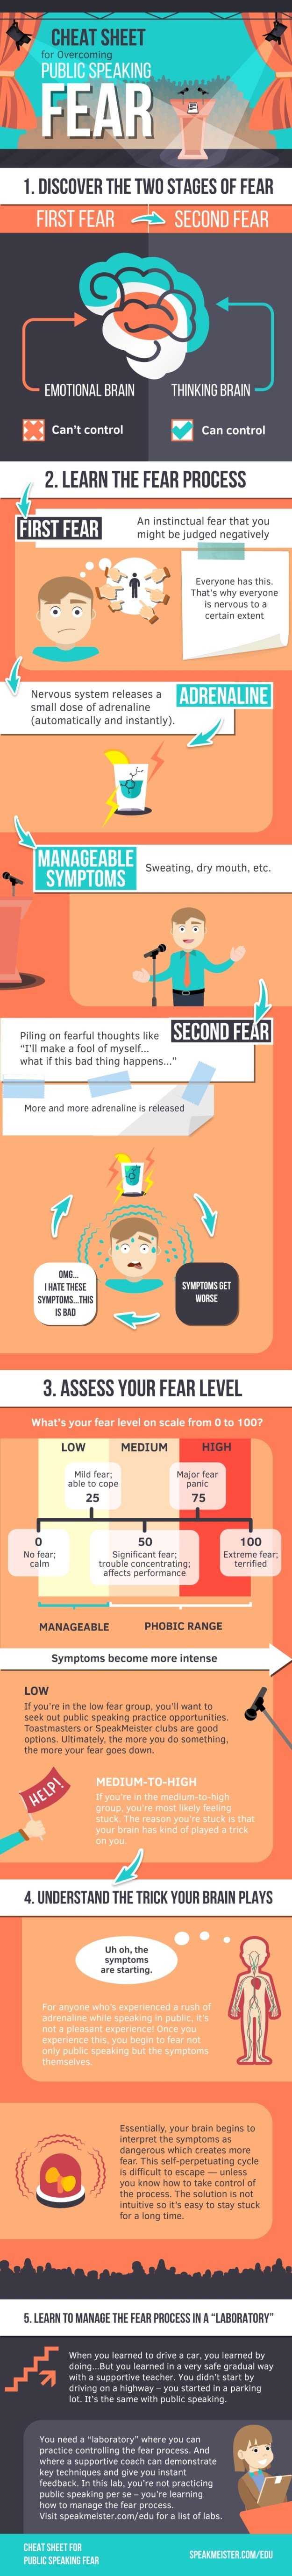 How to Overcome Public Speaking Fear Infographic